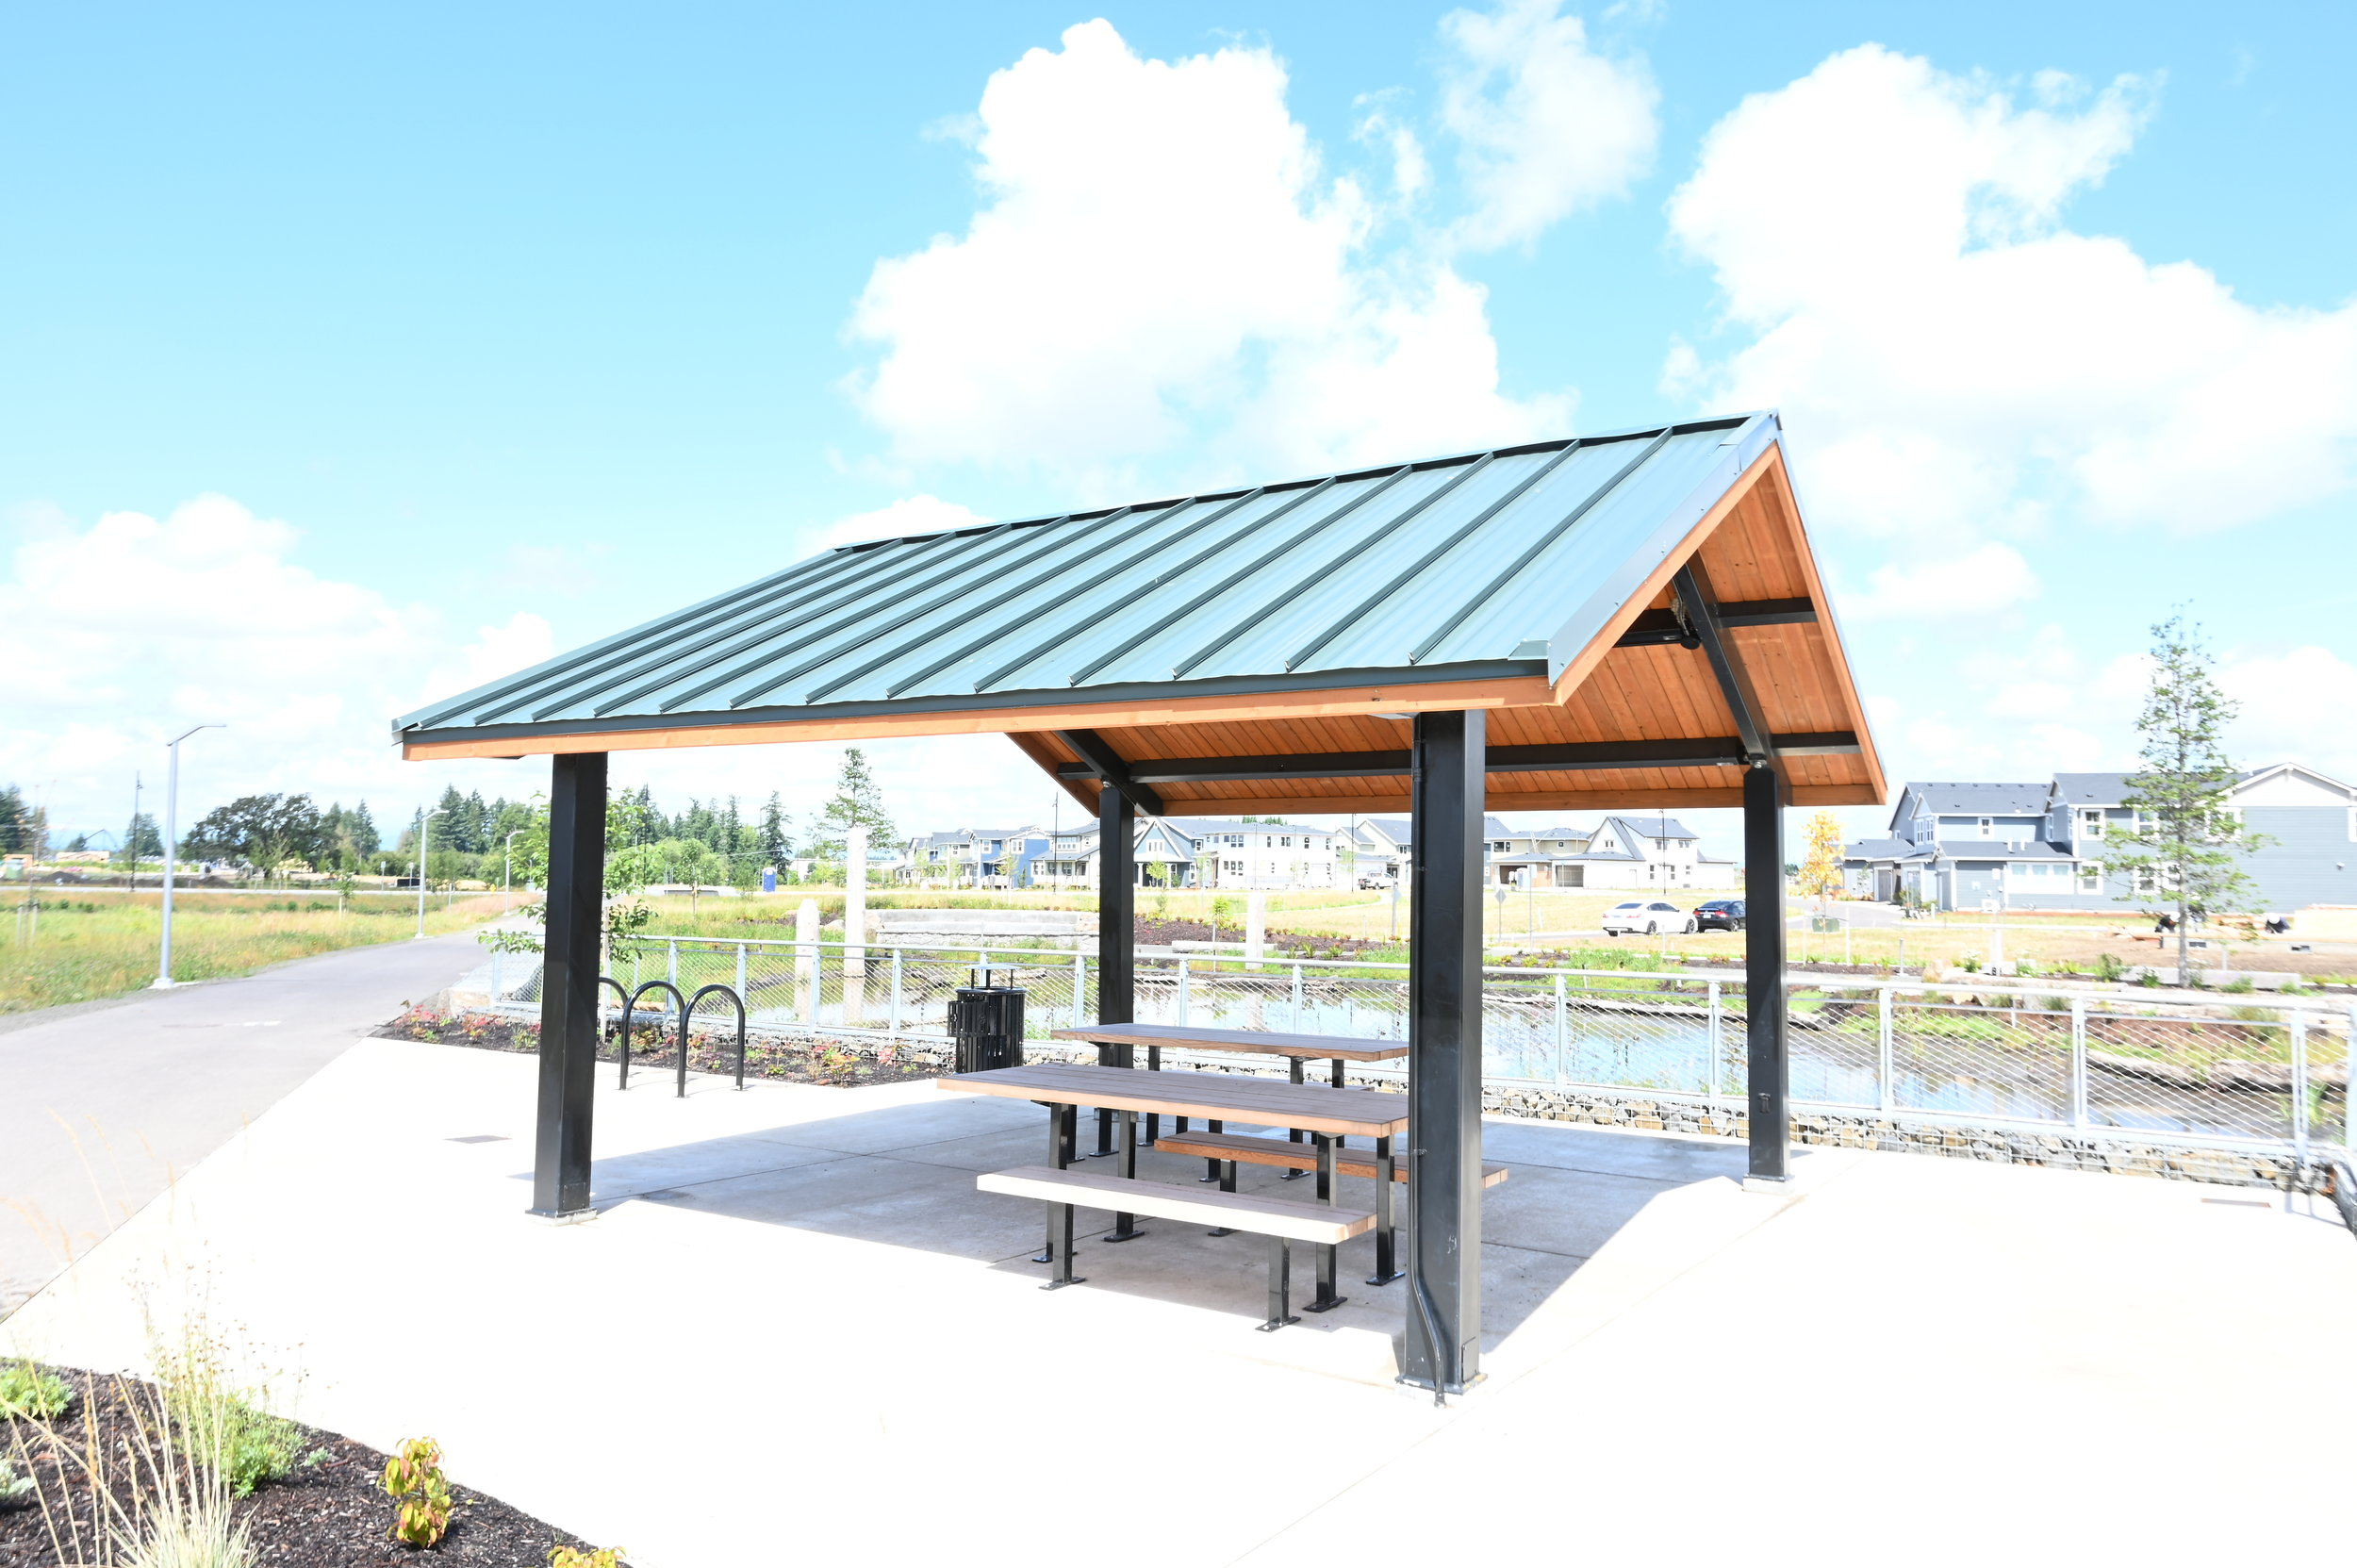 Overexposed picnic shelter on sunny day